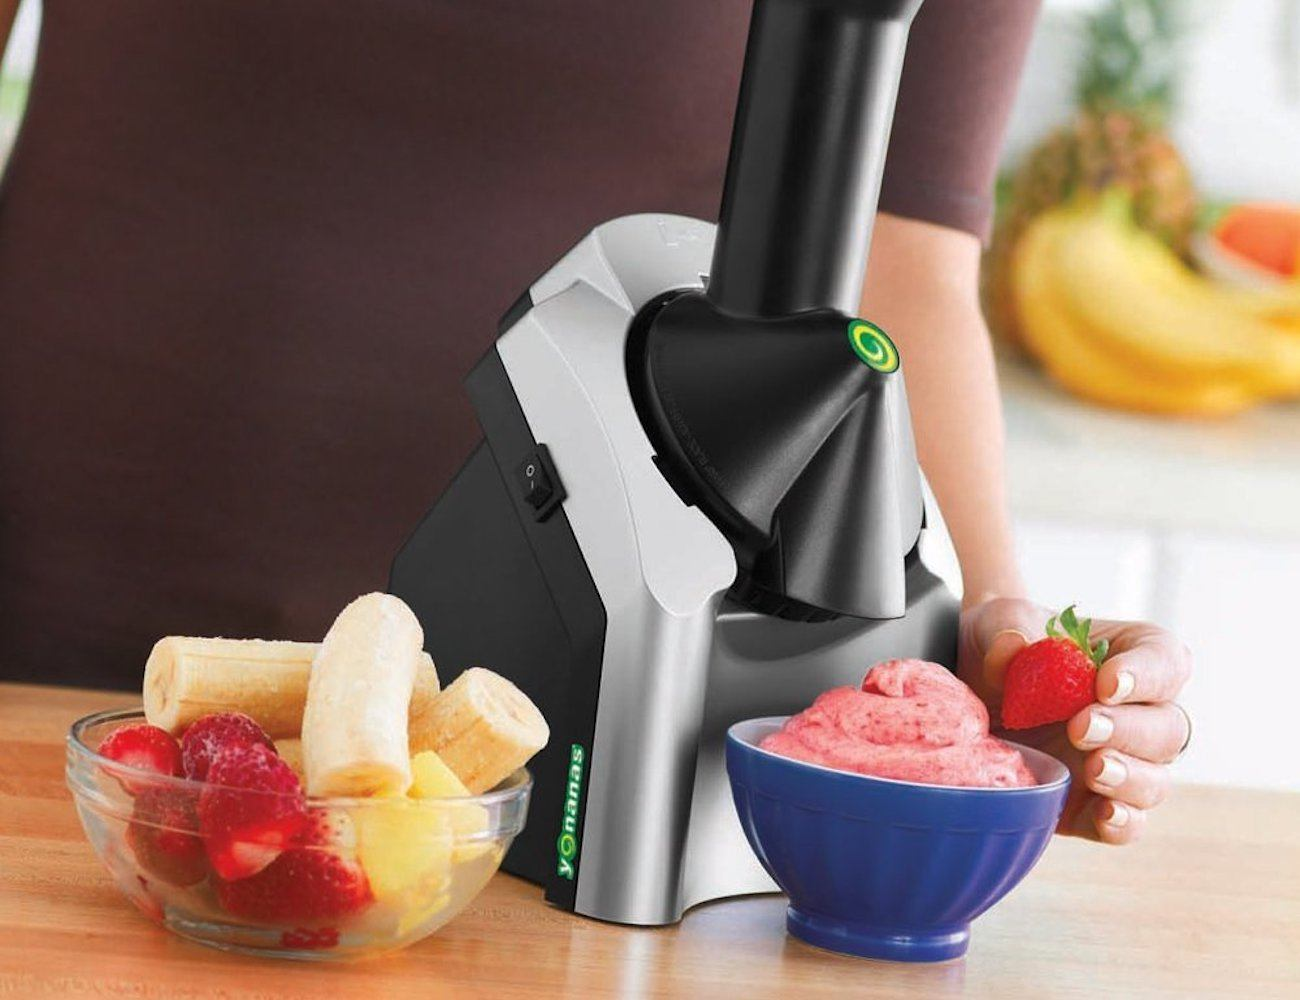 Yonanas+Frozen+Healthy+Dessert+Maker